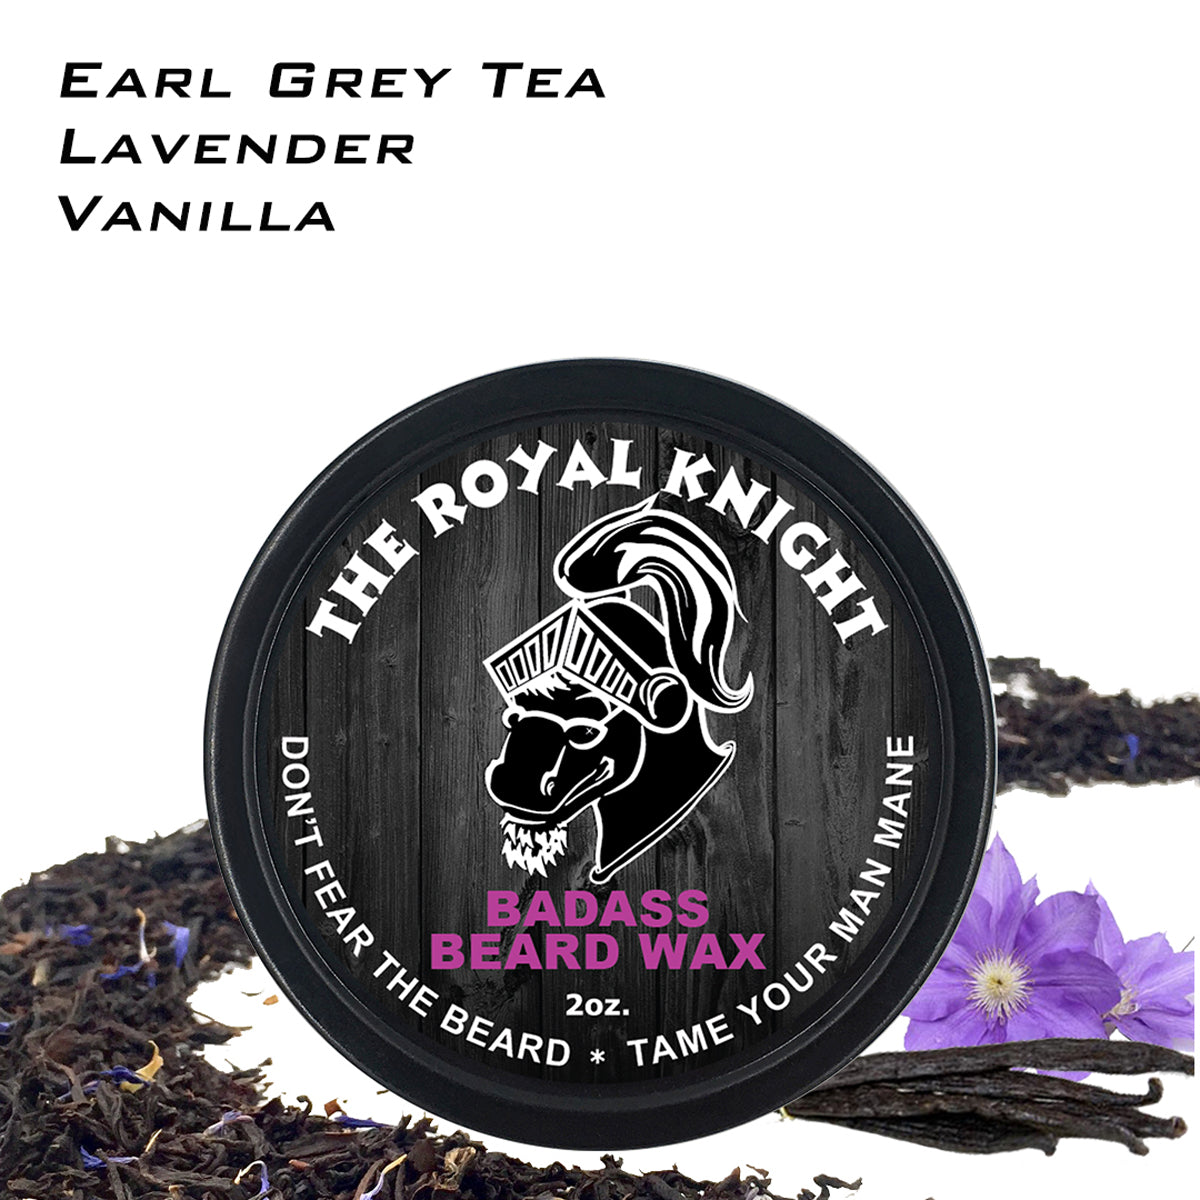 beard wax, badass beard care, the royal knight